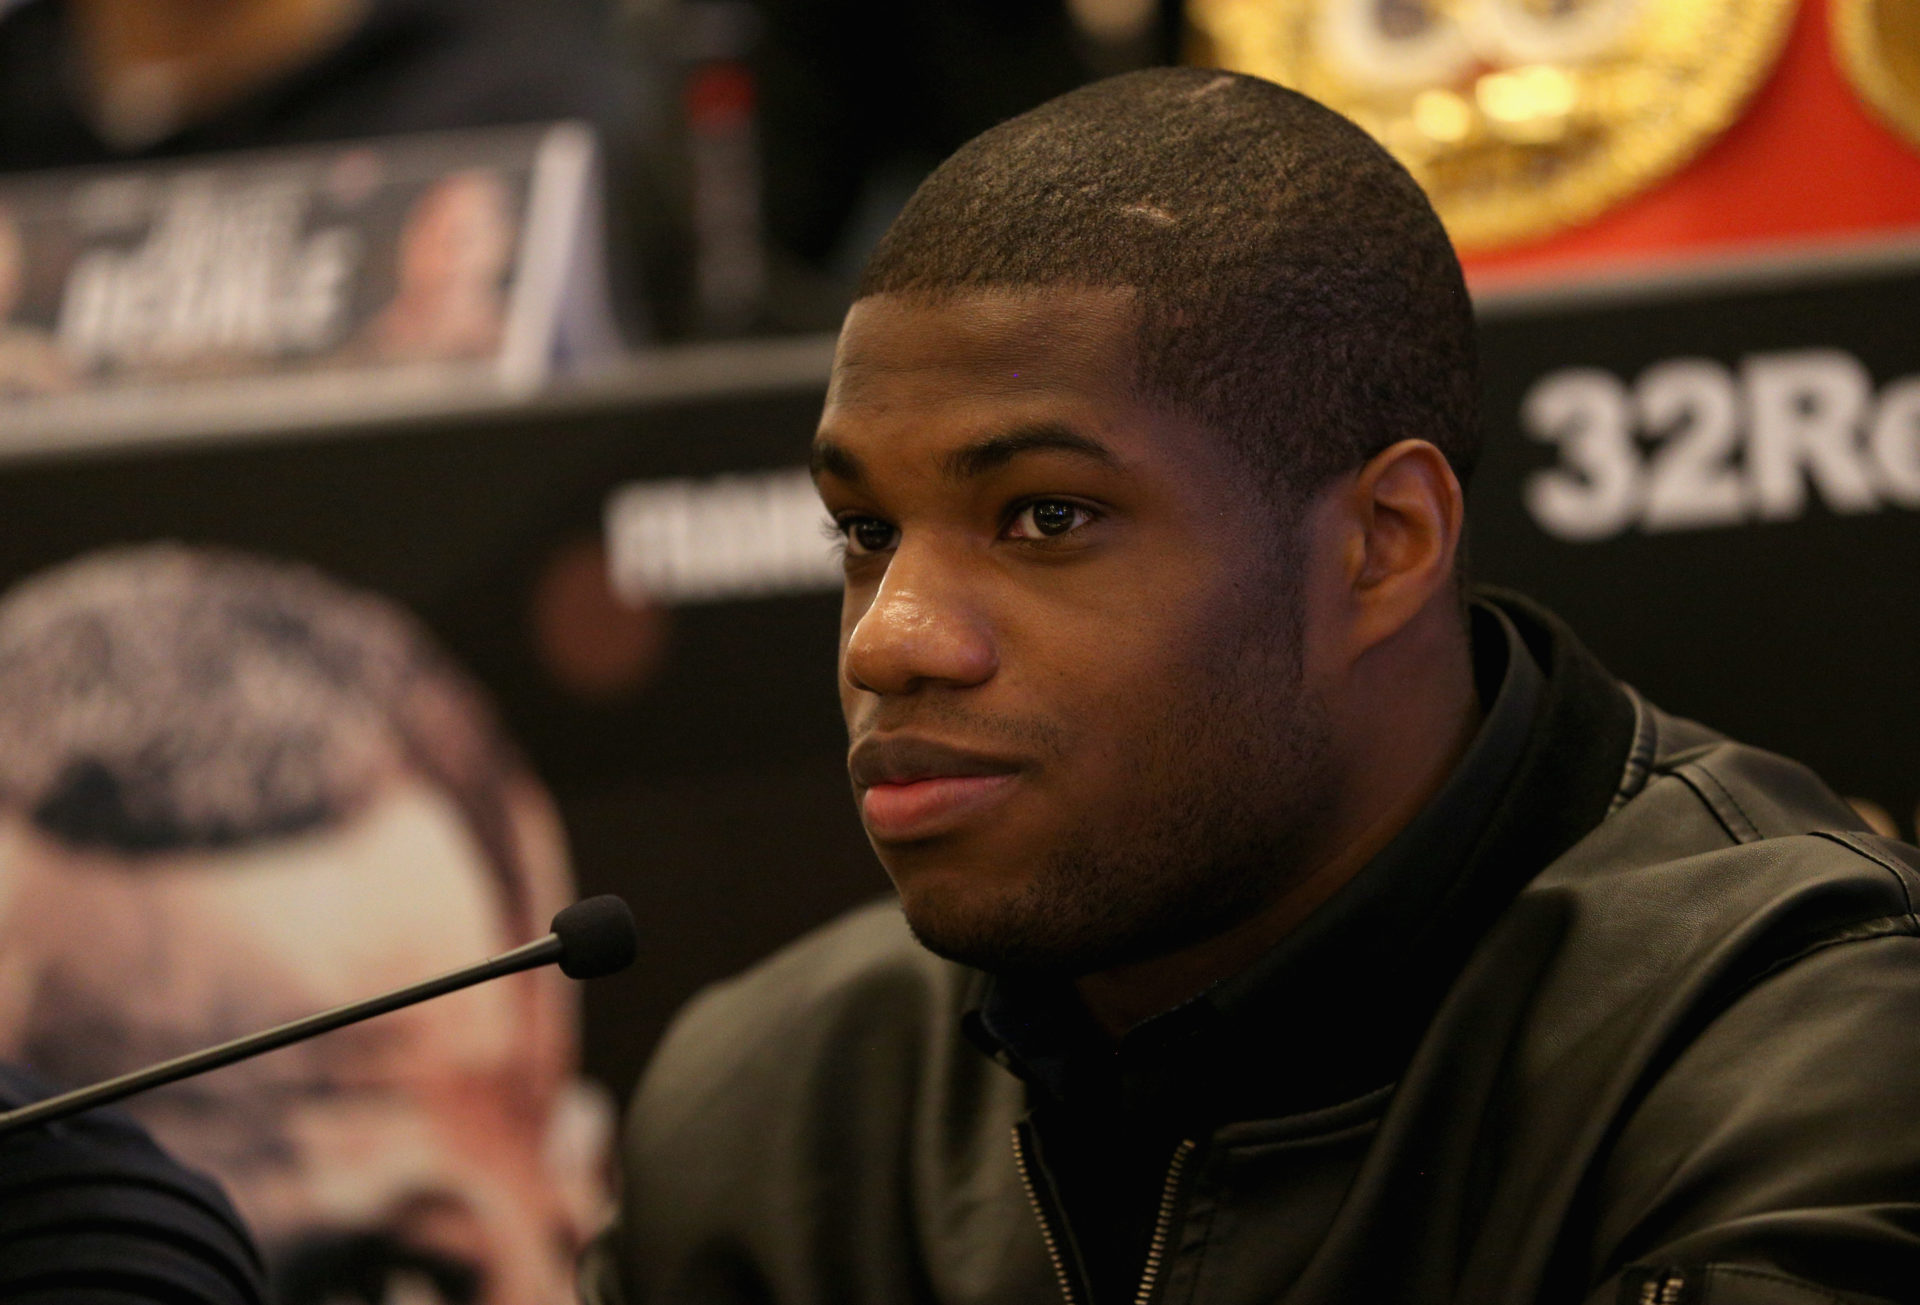 """Daniel Dubois: """"One Day I'd Like To Get In The Ring With Dillian Whyte, I'd Like To Show Him Just How Much Of A Quitter I Am"""""""